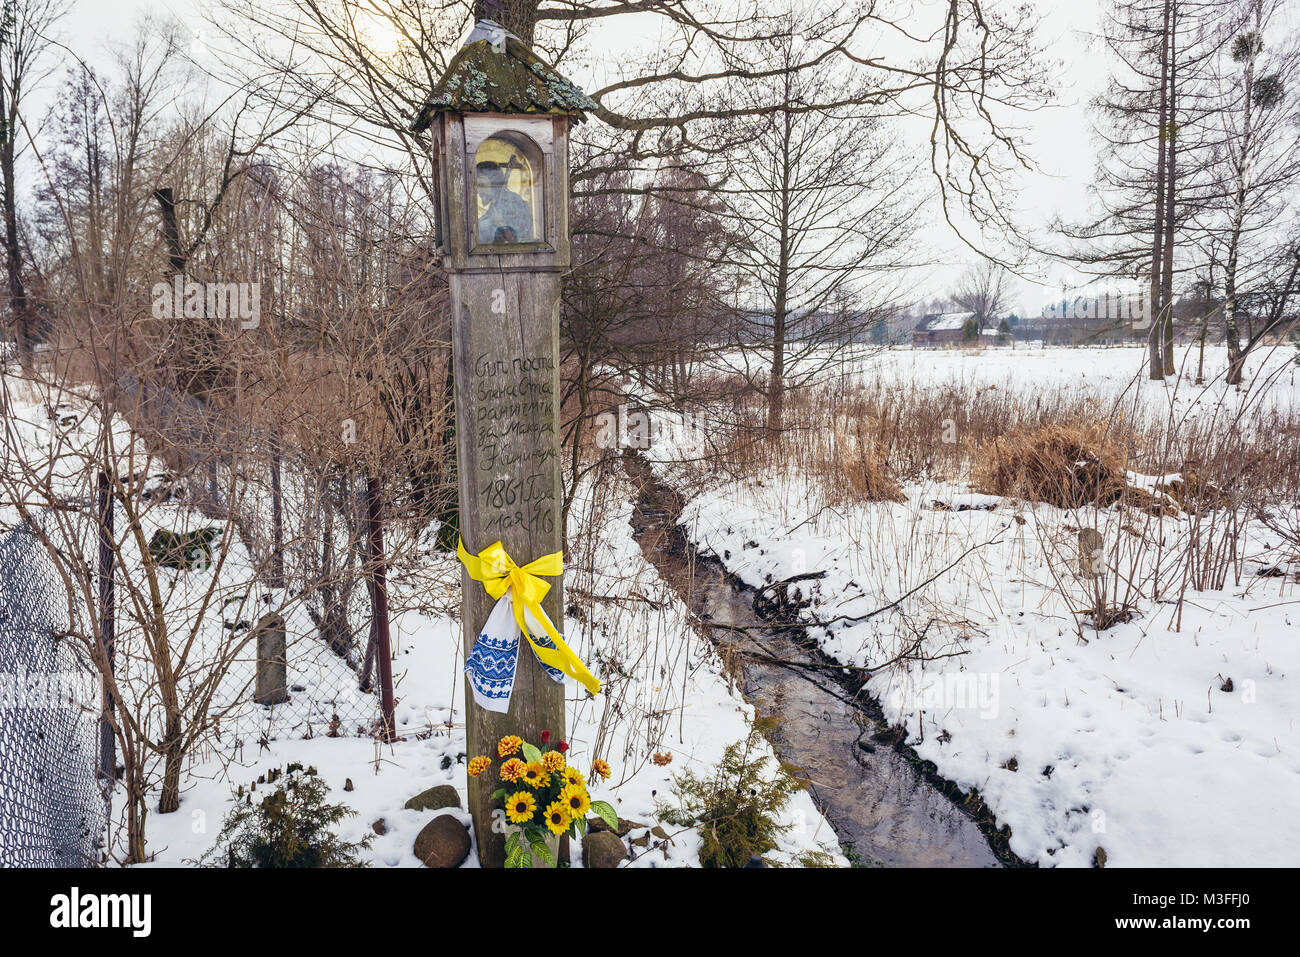 Old wayside pole shrine in Soce village on so called The Land of Open Shutters trail, famous for traditional architecture - Stock Image